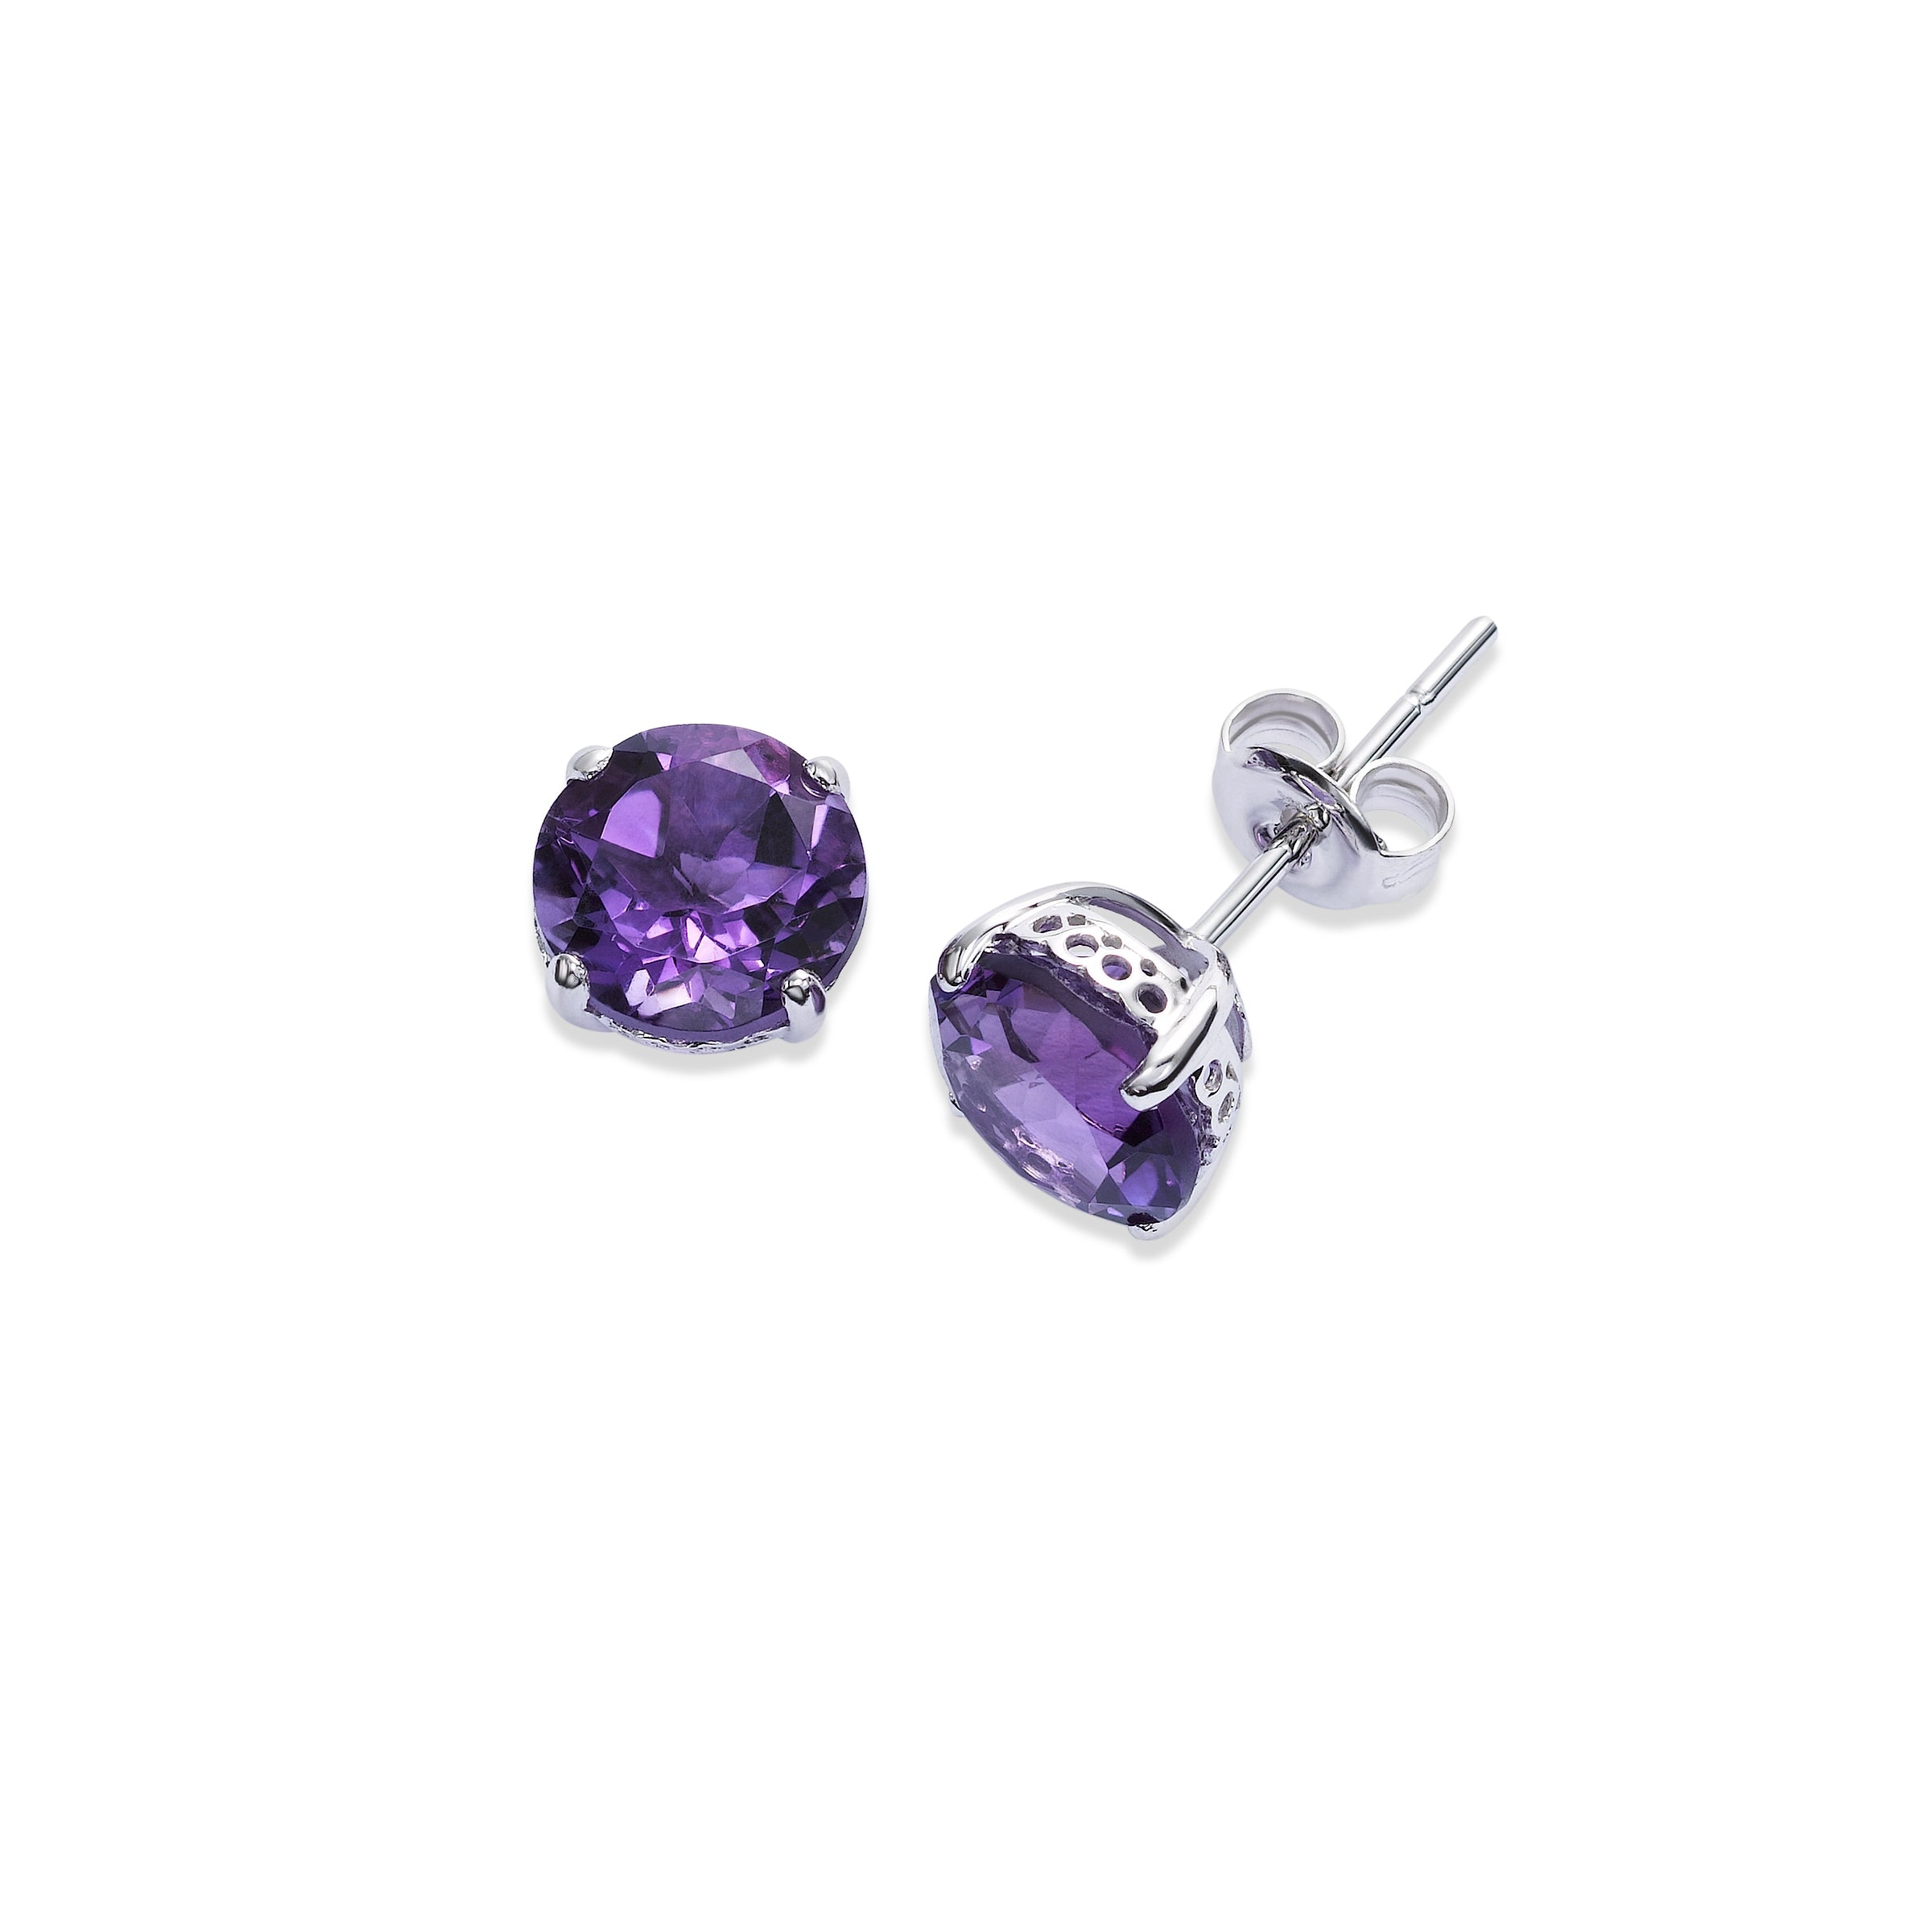 Round Amethyst Stud Earrings, 8 MM, 14K White Gold